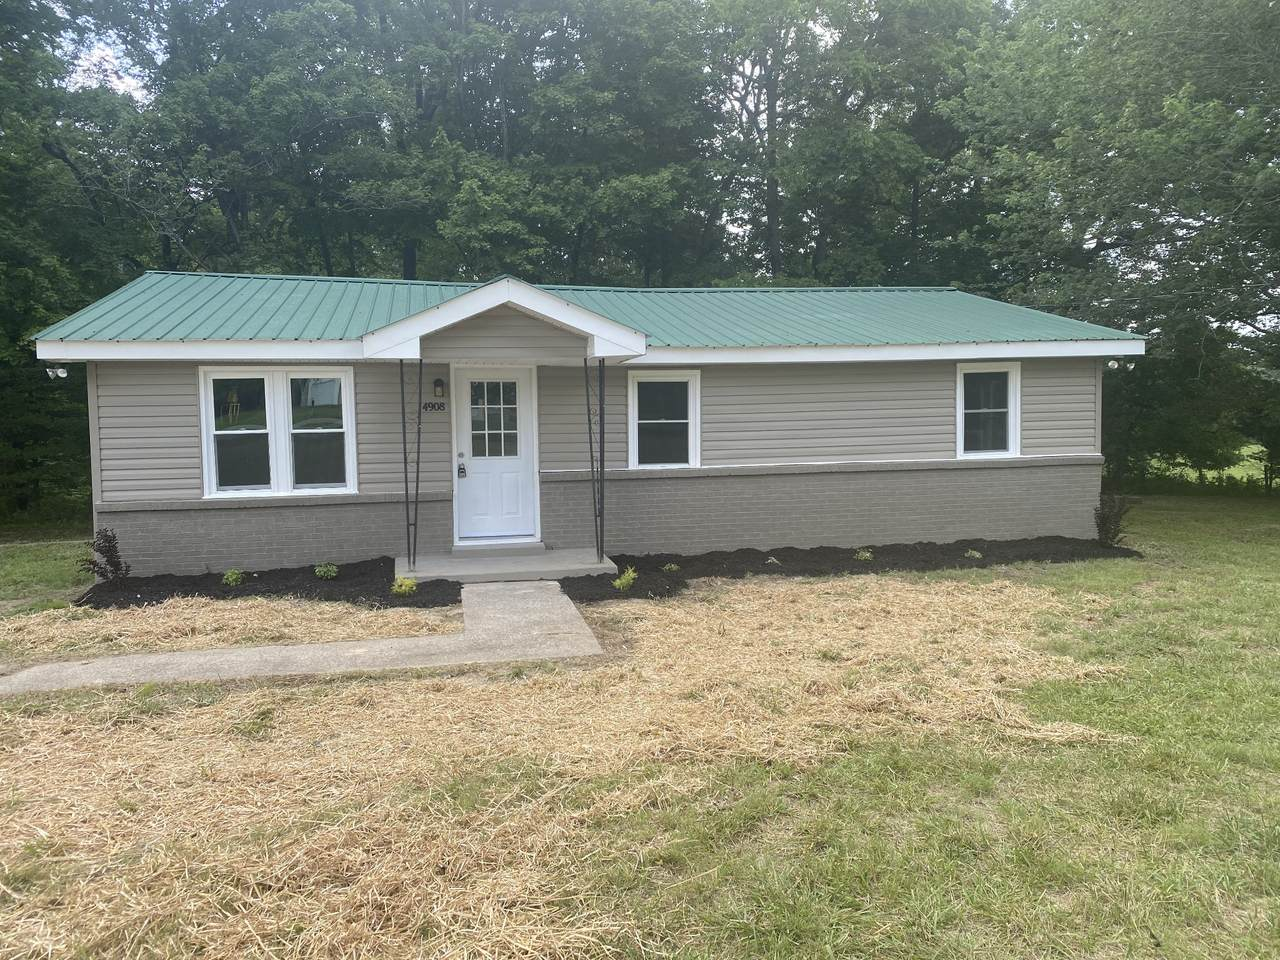 4908 Marion Rd - Photo 1